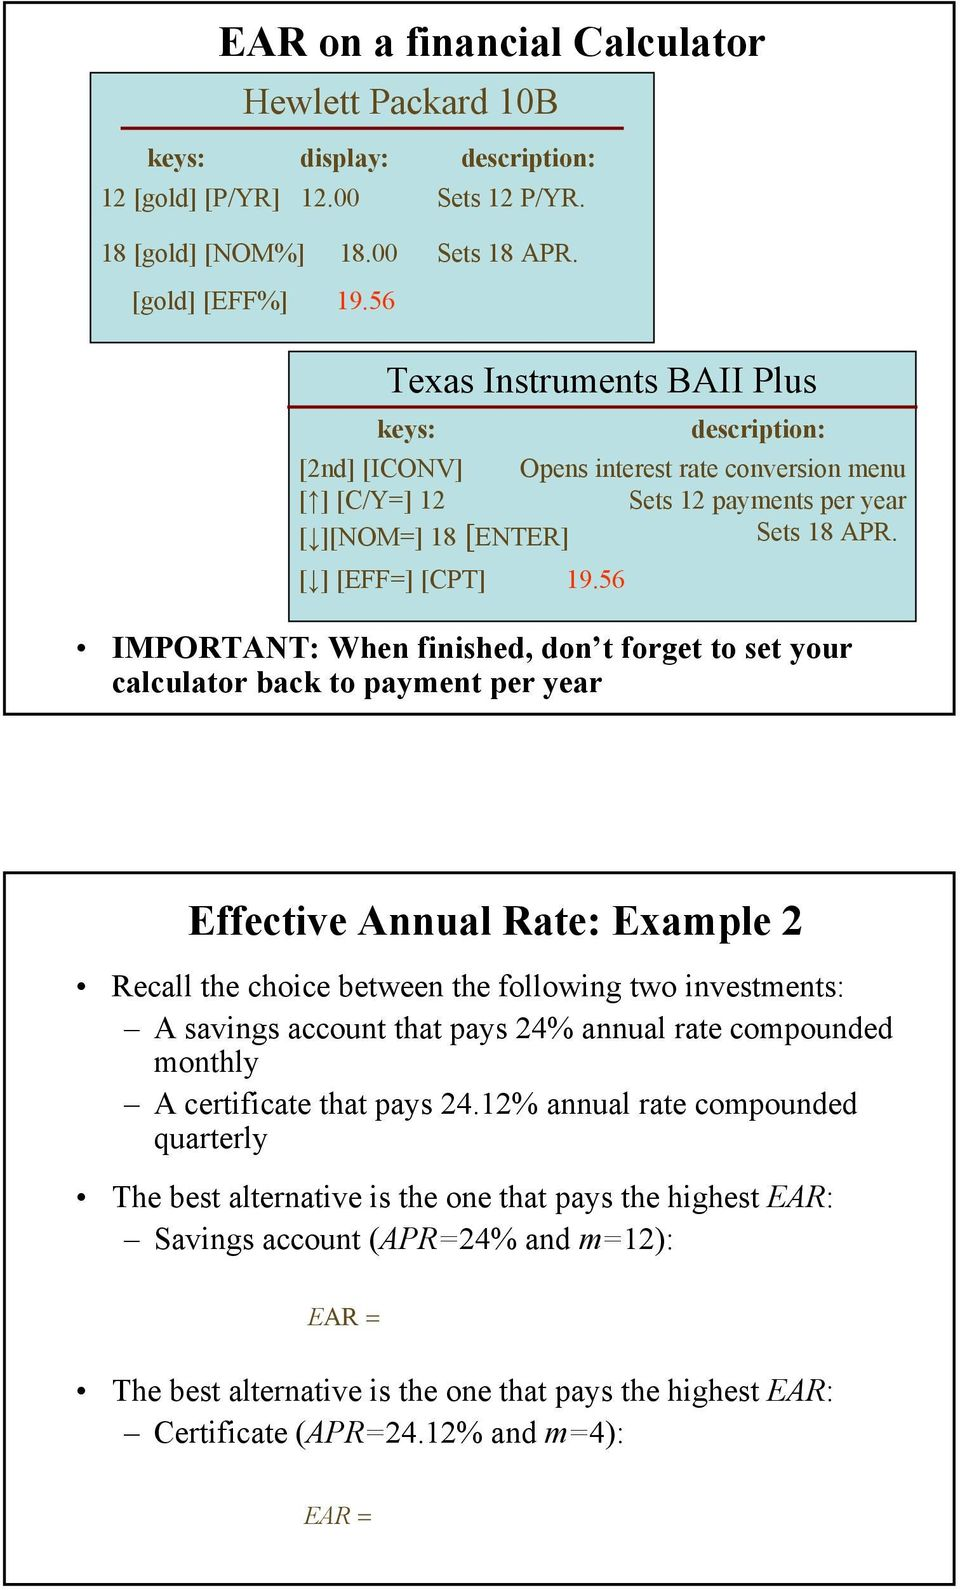 56 IMPORTANT: When finished, don t forget to set your calculator back to payment per year Effective Annual Rate: Example Recall the choice between the following two investments: A savings account